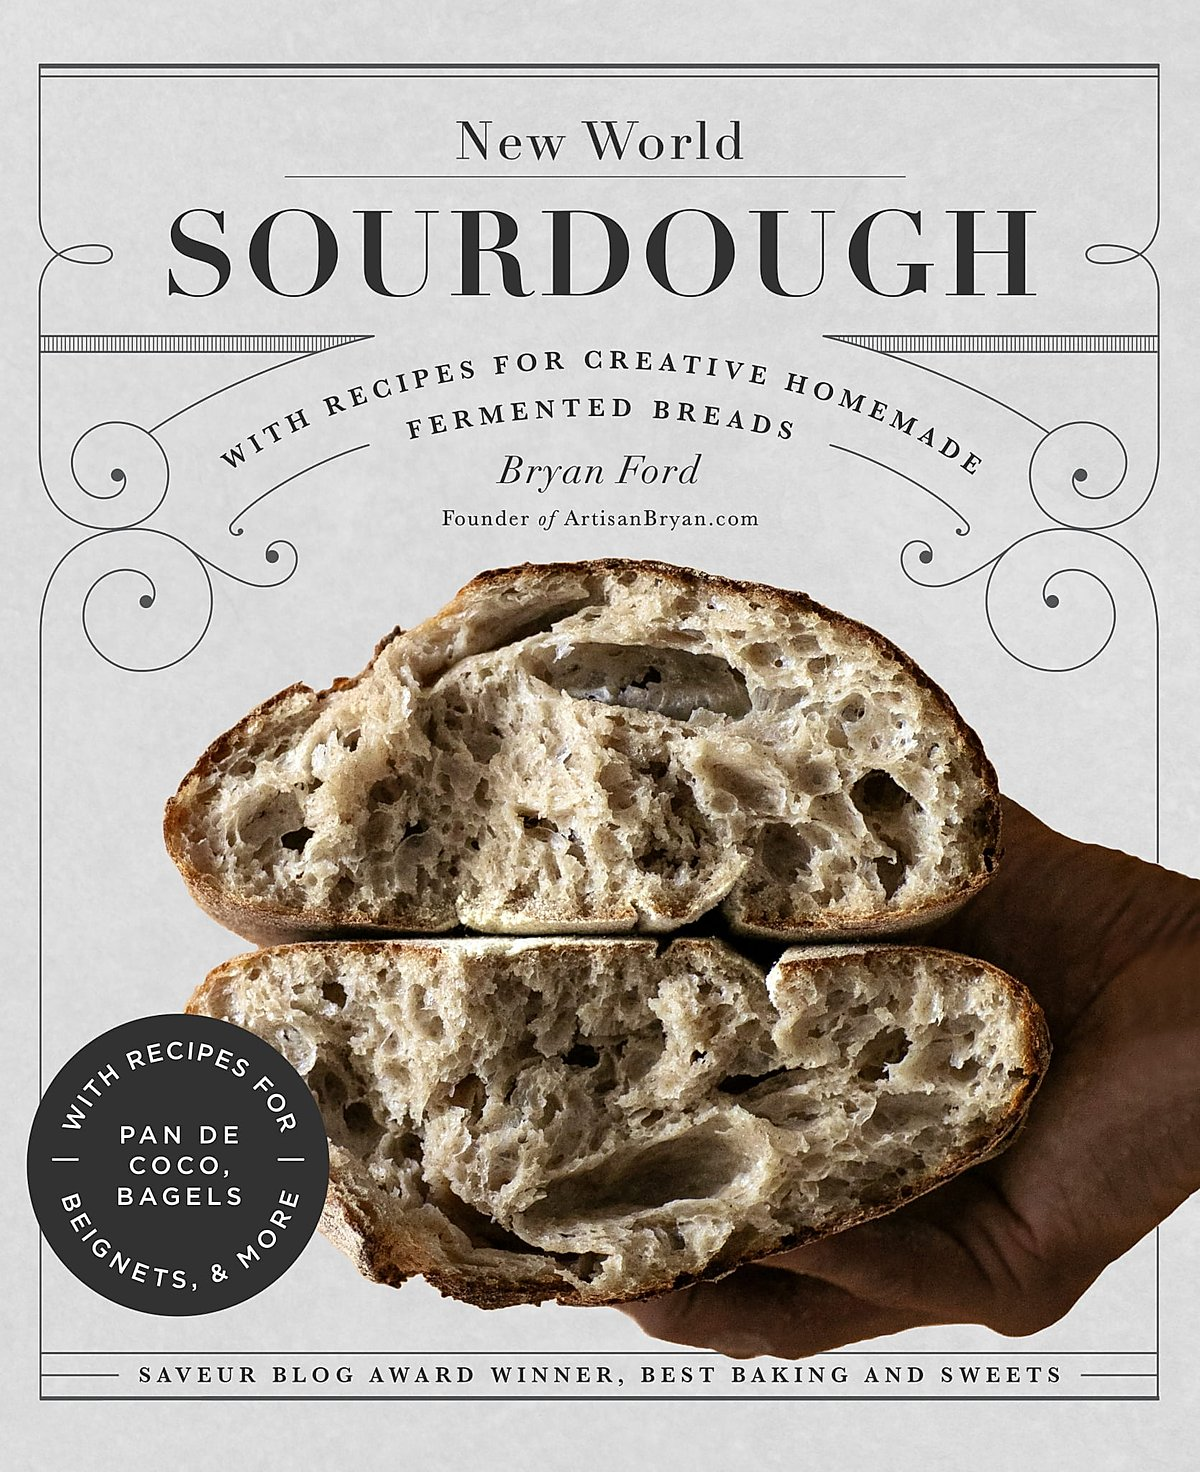 a picture of New World Sourdough, a book by Bryan Ford